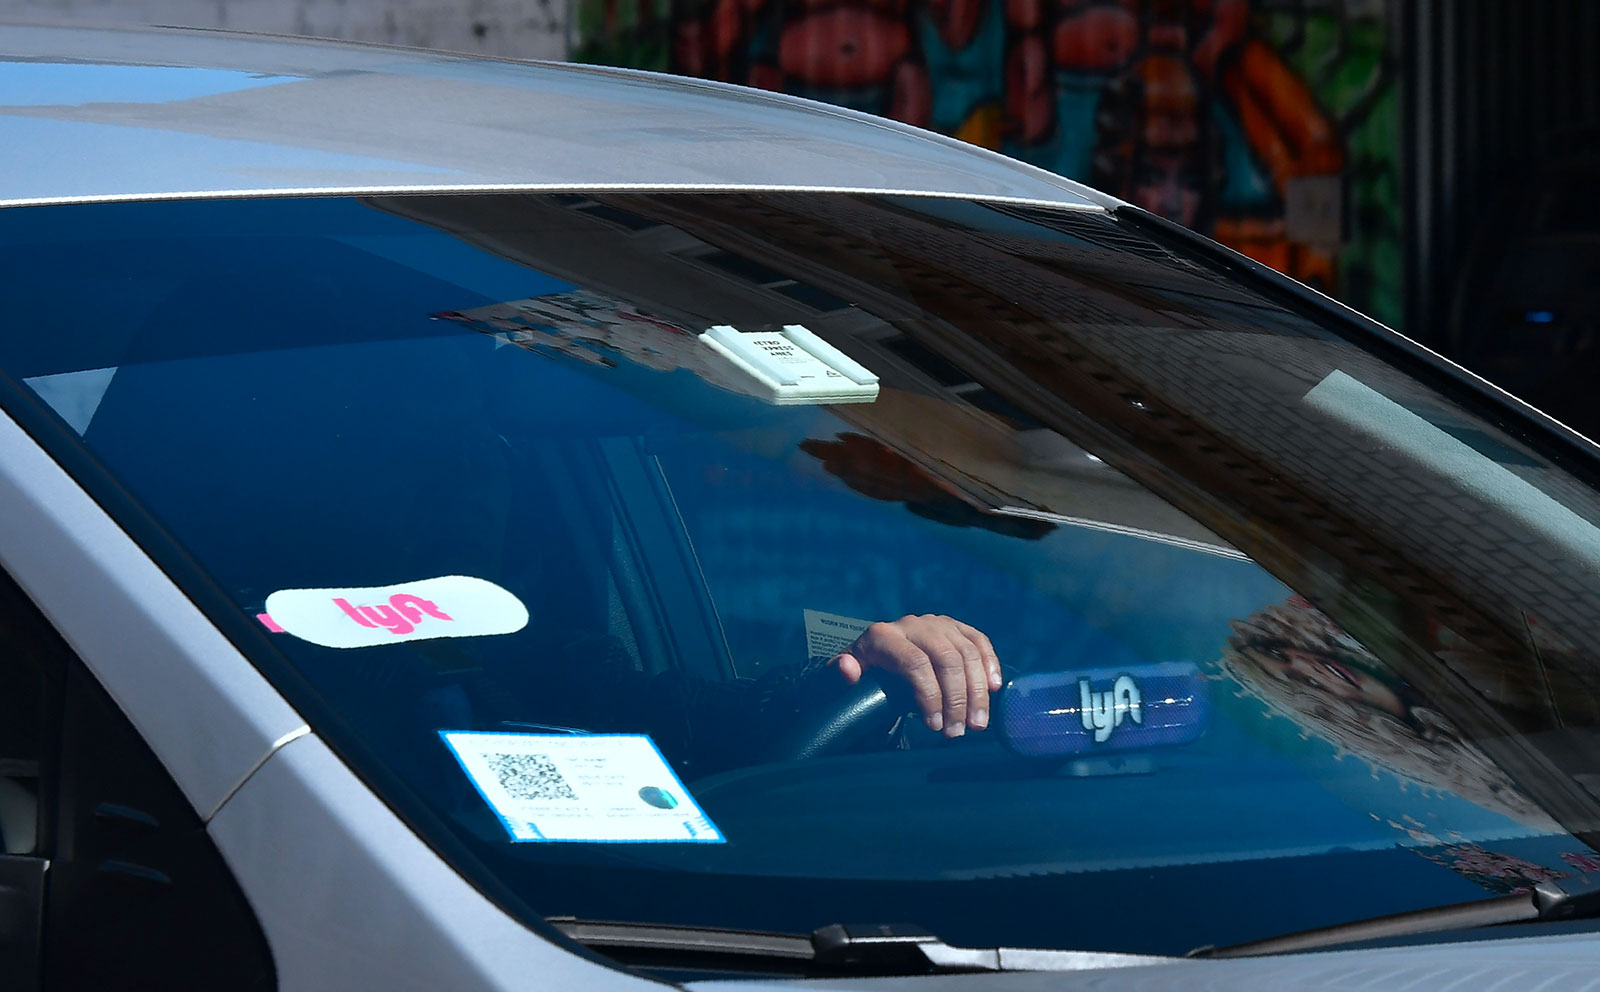 Lyft aims for a $23 billion valuation